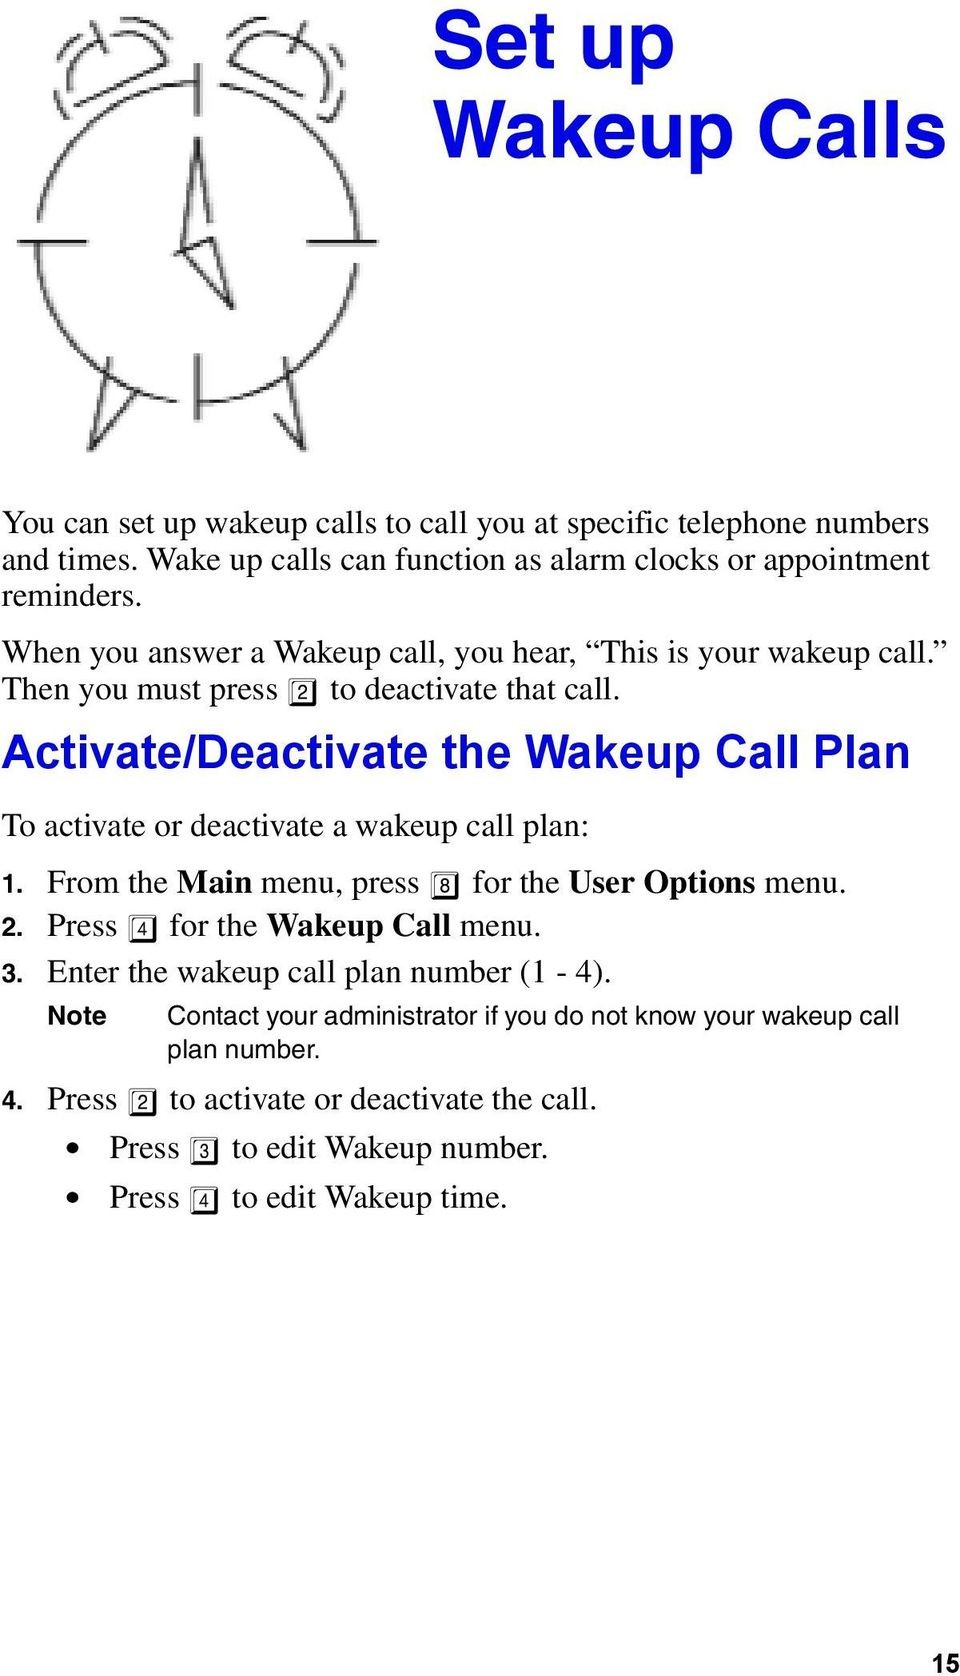 Activate/Deactivate the Wakeup Call Plan To activate or deactivate a wakeup call plan: 1. From the Main menu, press 8 for the User Options menu. 2.